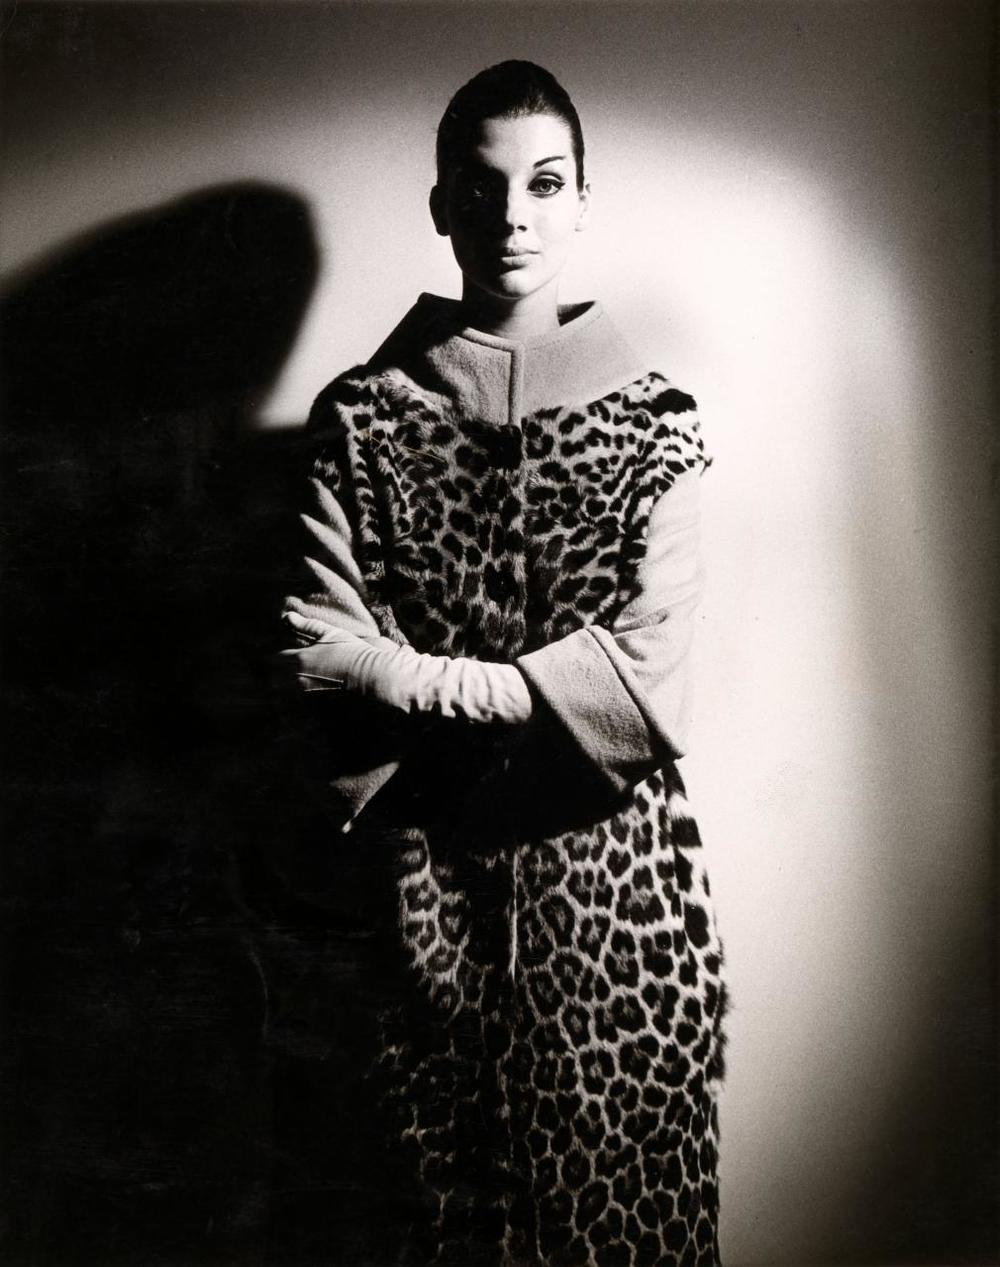 Henry Talbot No title (Fashion illustration, model MaggieTabberer wearing ocelot coat) 1961–66 gelatin silver photograph 24.0 x 19.0 cm (image and sheet) Henry Talbot Fashion Photography Archive (119634) © Lynette Anne Talbot